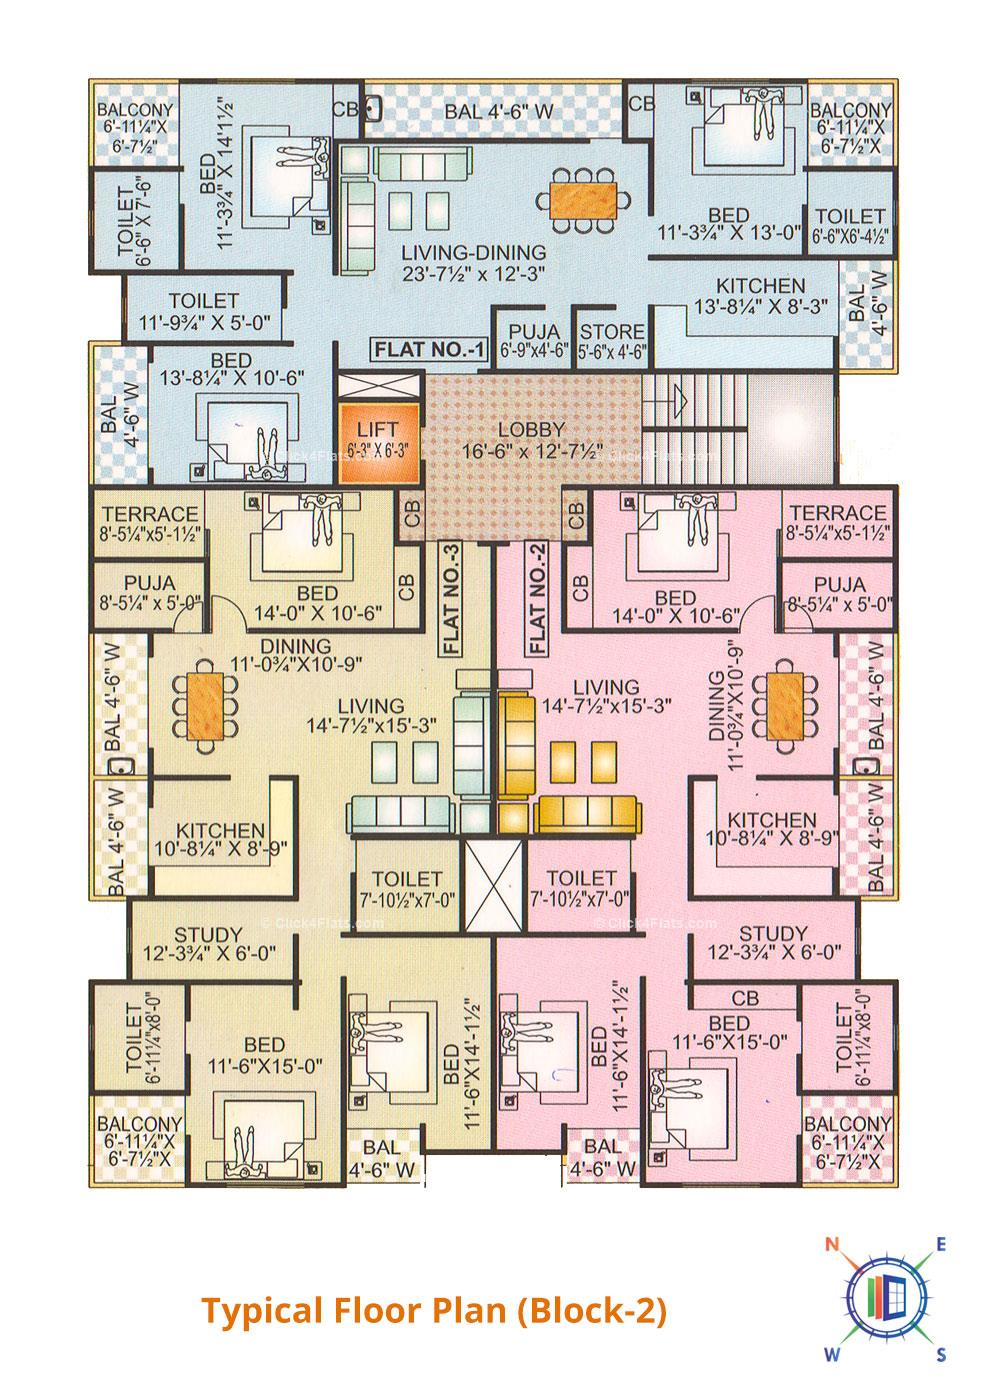 Sapphire Anand Typical Floor Plan (Block-2)